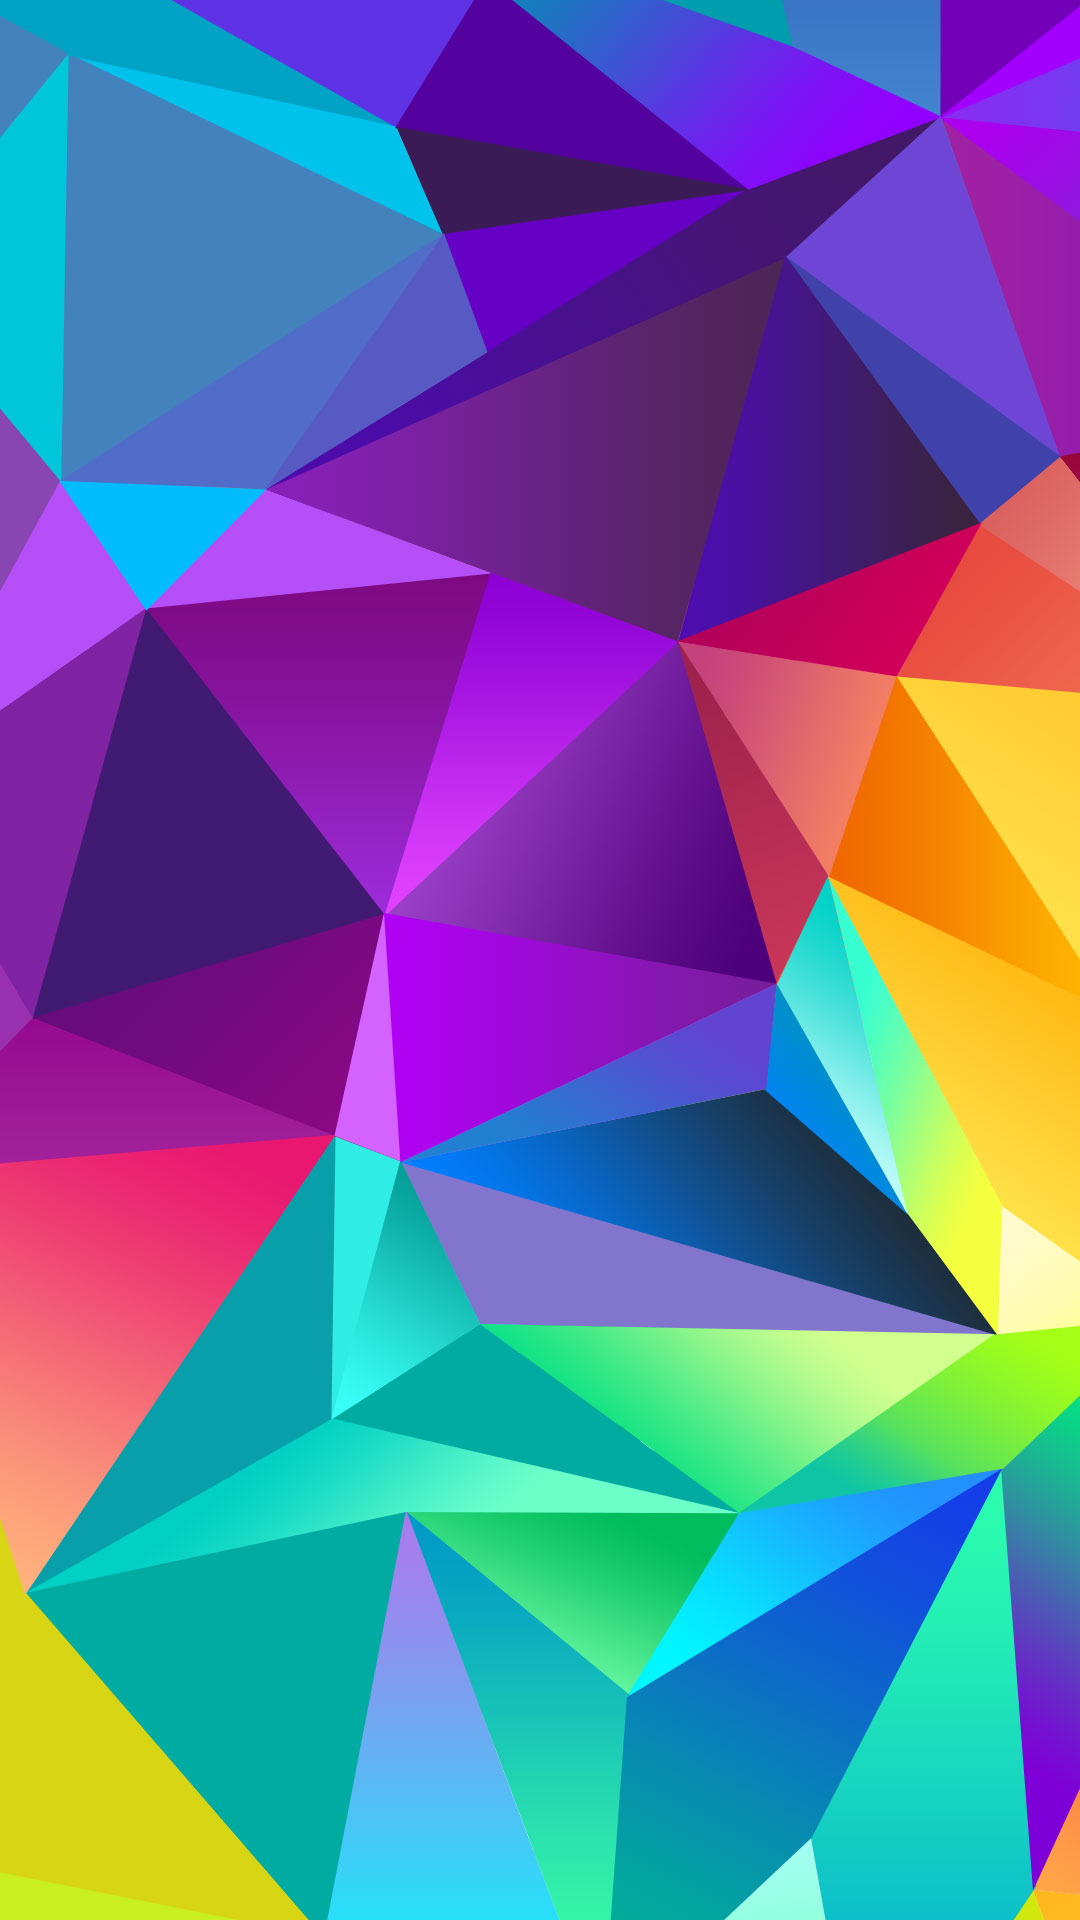 Colorful Iphone Wallpapers HD